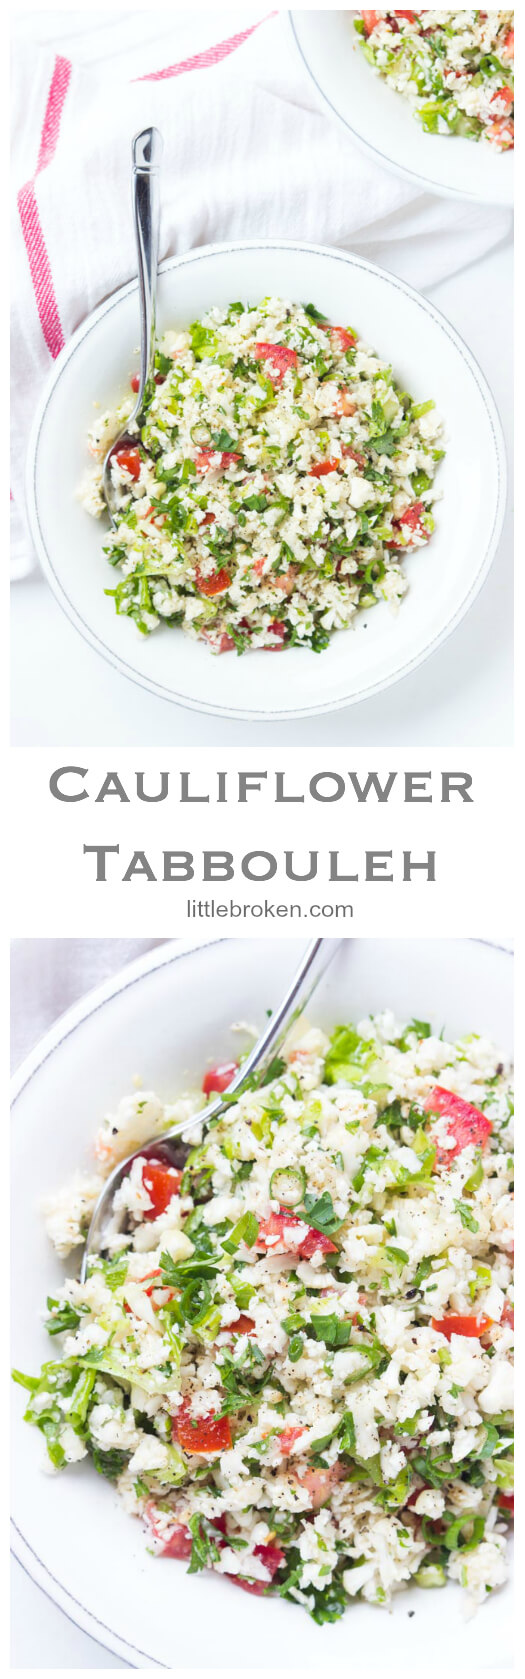 Veggie loaded tabbouleh with cauliflower instead of bulgur. Tossed in a 3 ingredient super delicious vinaigrette. Healthy vegetable side dish all the way! | littlebroken.com @littlebroken